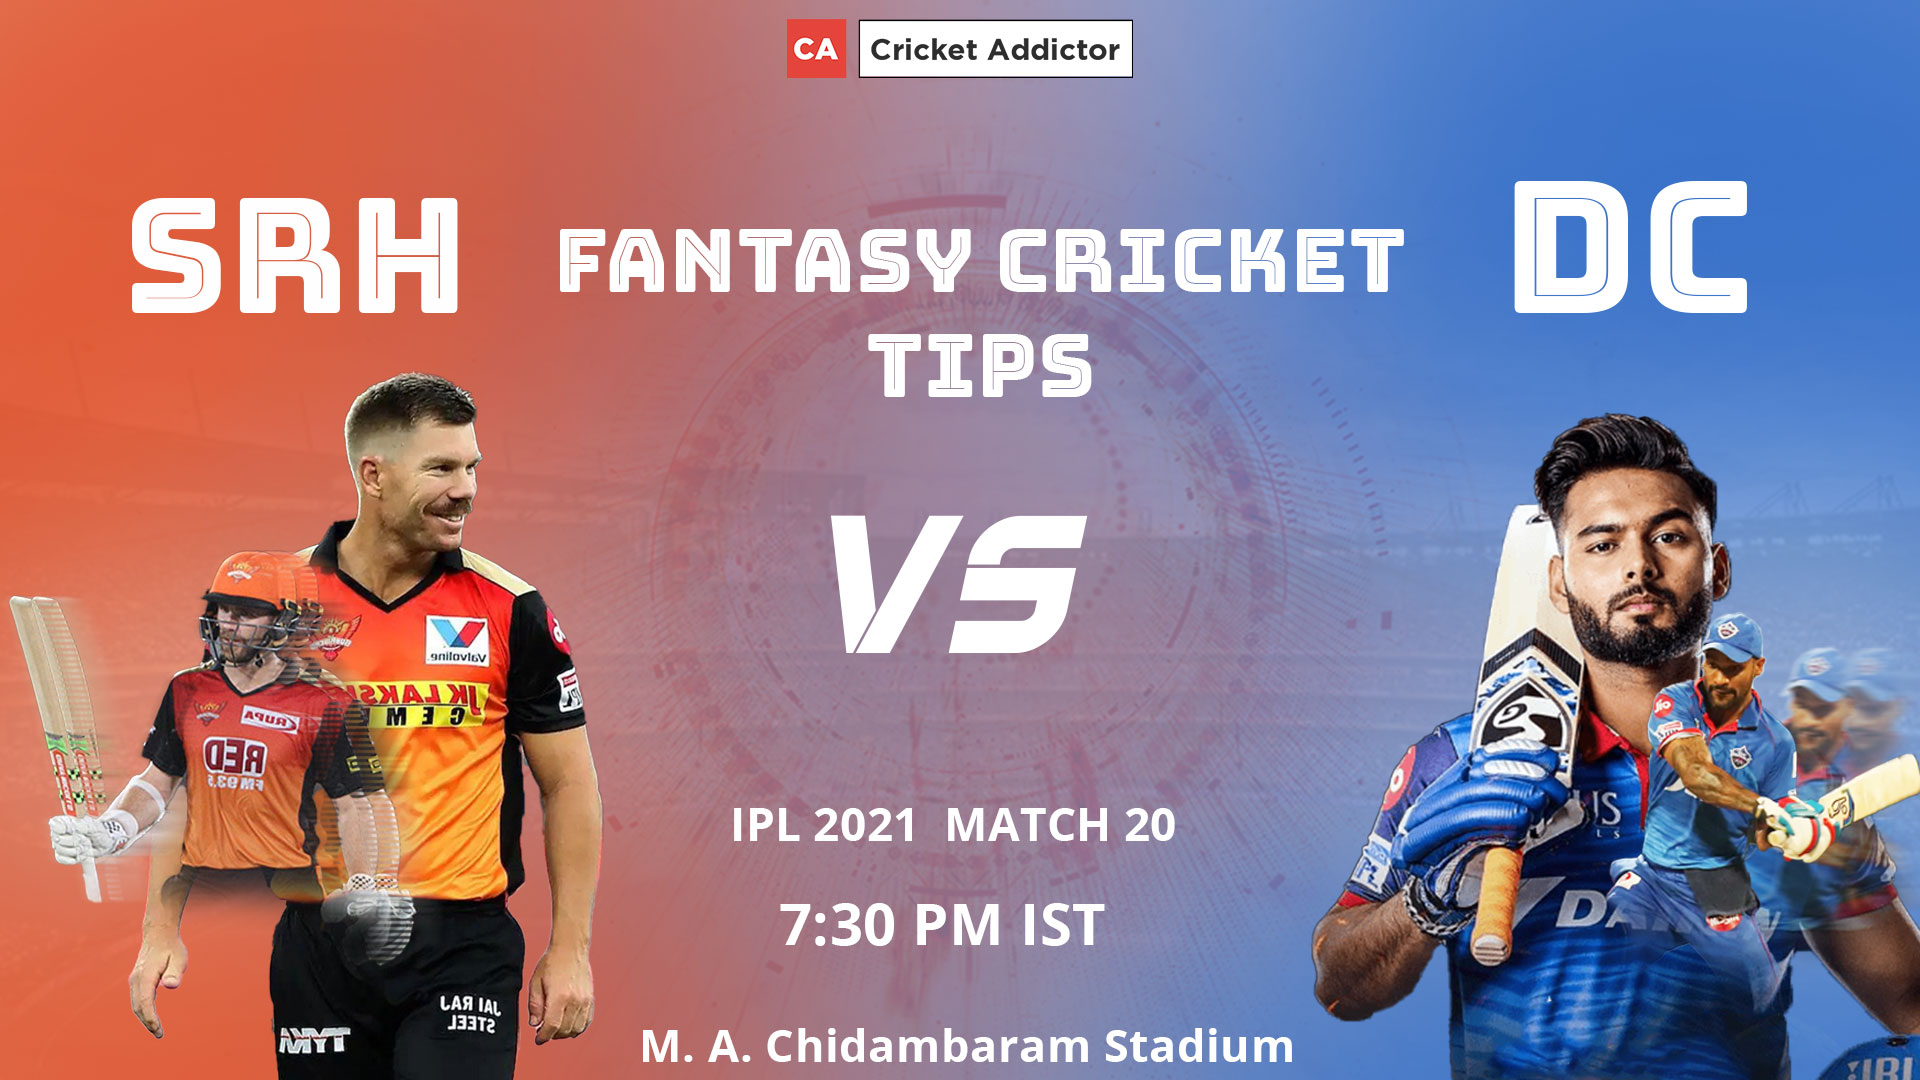 SunRisers Hyderabad (SRH) vs Delhi Capitals (DC) Dream11 Prediction, Fantasy Cricket Tips, Playing XI, Fantasy Team, Pitch Report, Dream11 Team, Injury Update of VIVO IPL 2021.